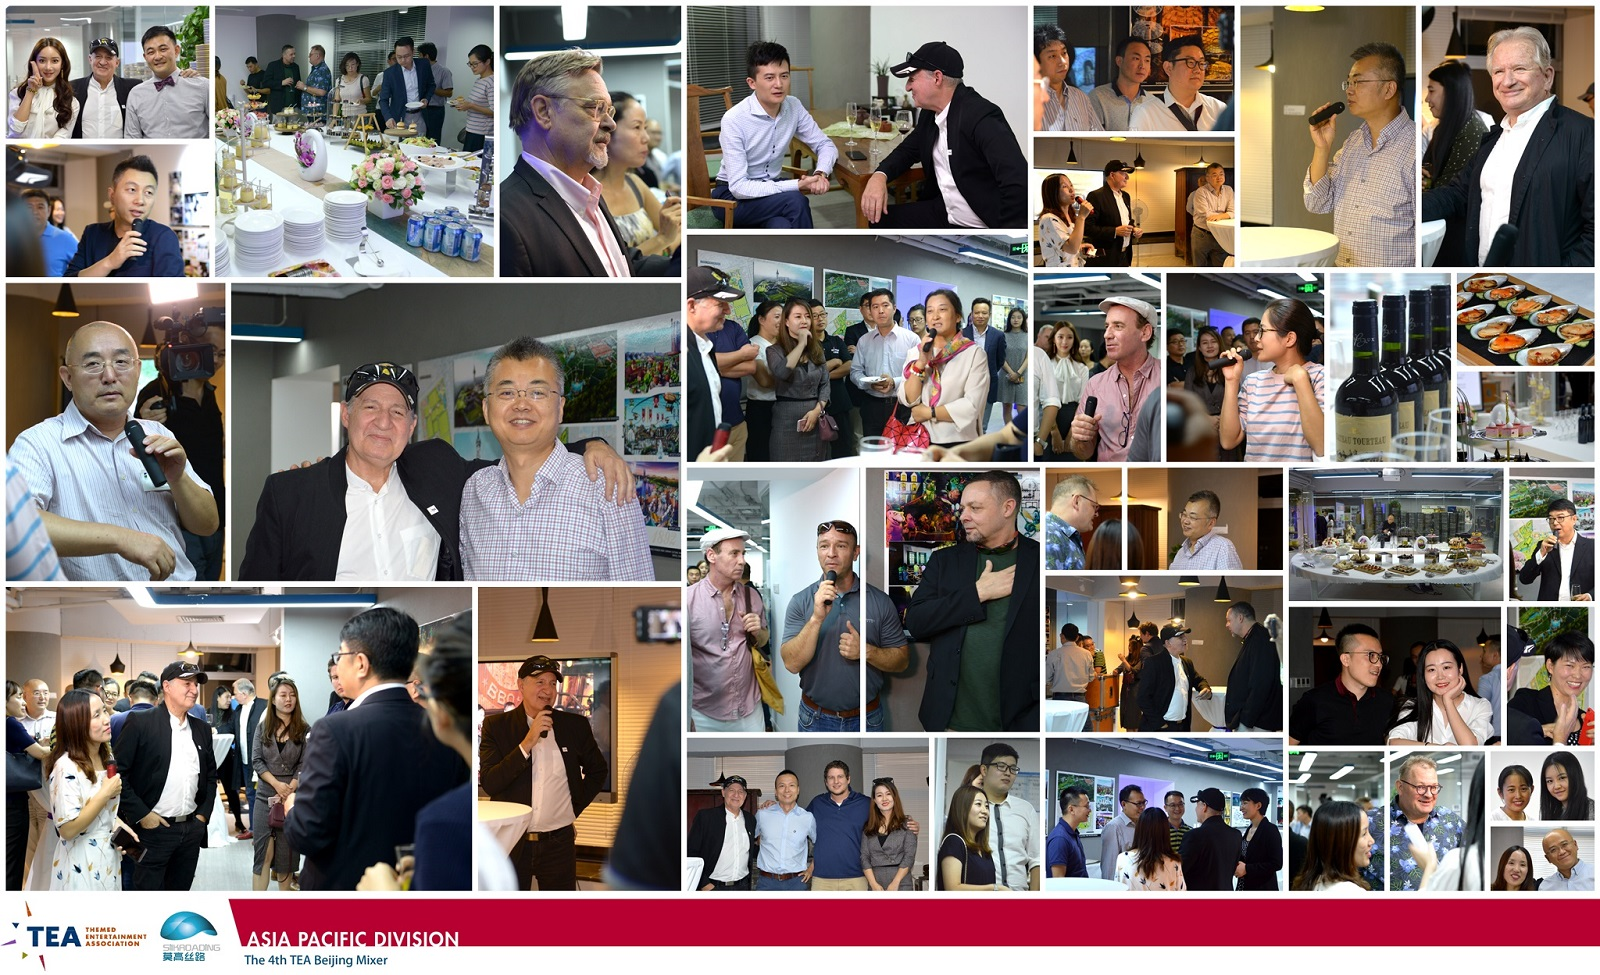 80 attend TEA Asia Pacific Division Beijing Mixer at Silkroading, Sept 22